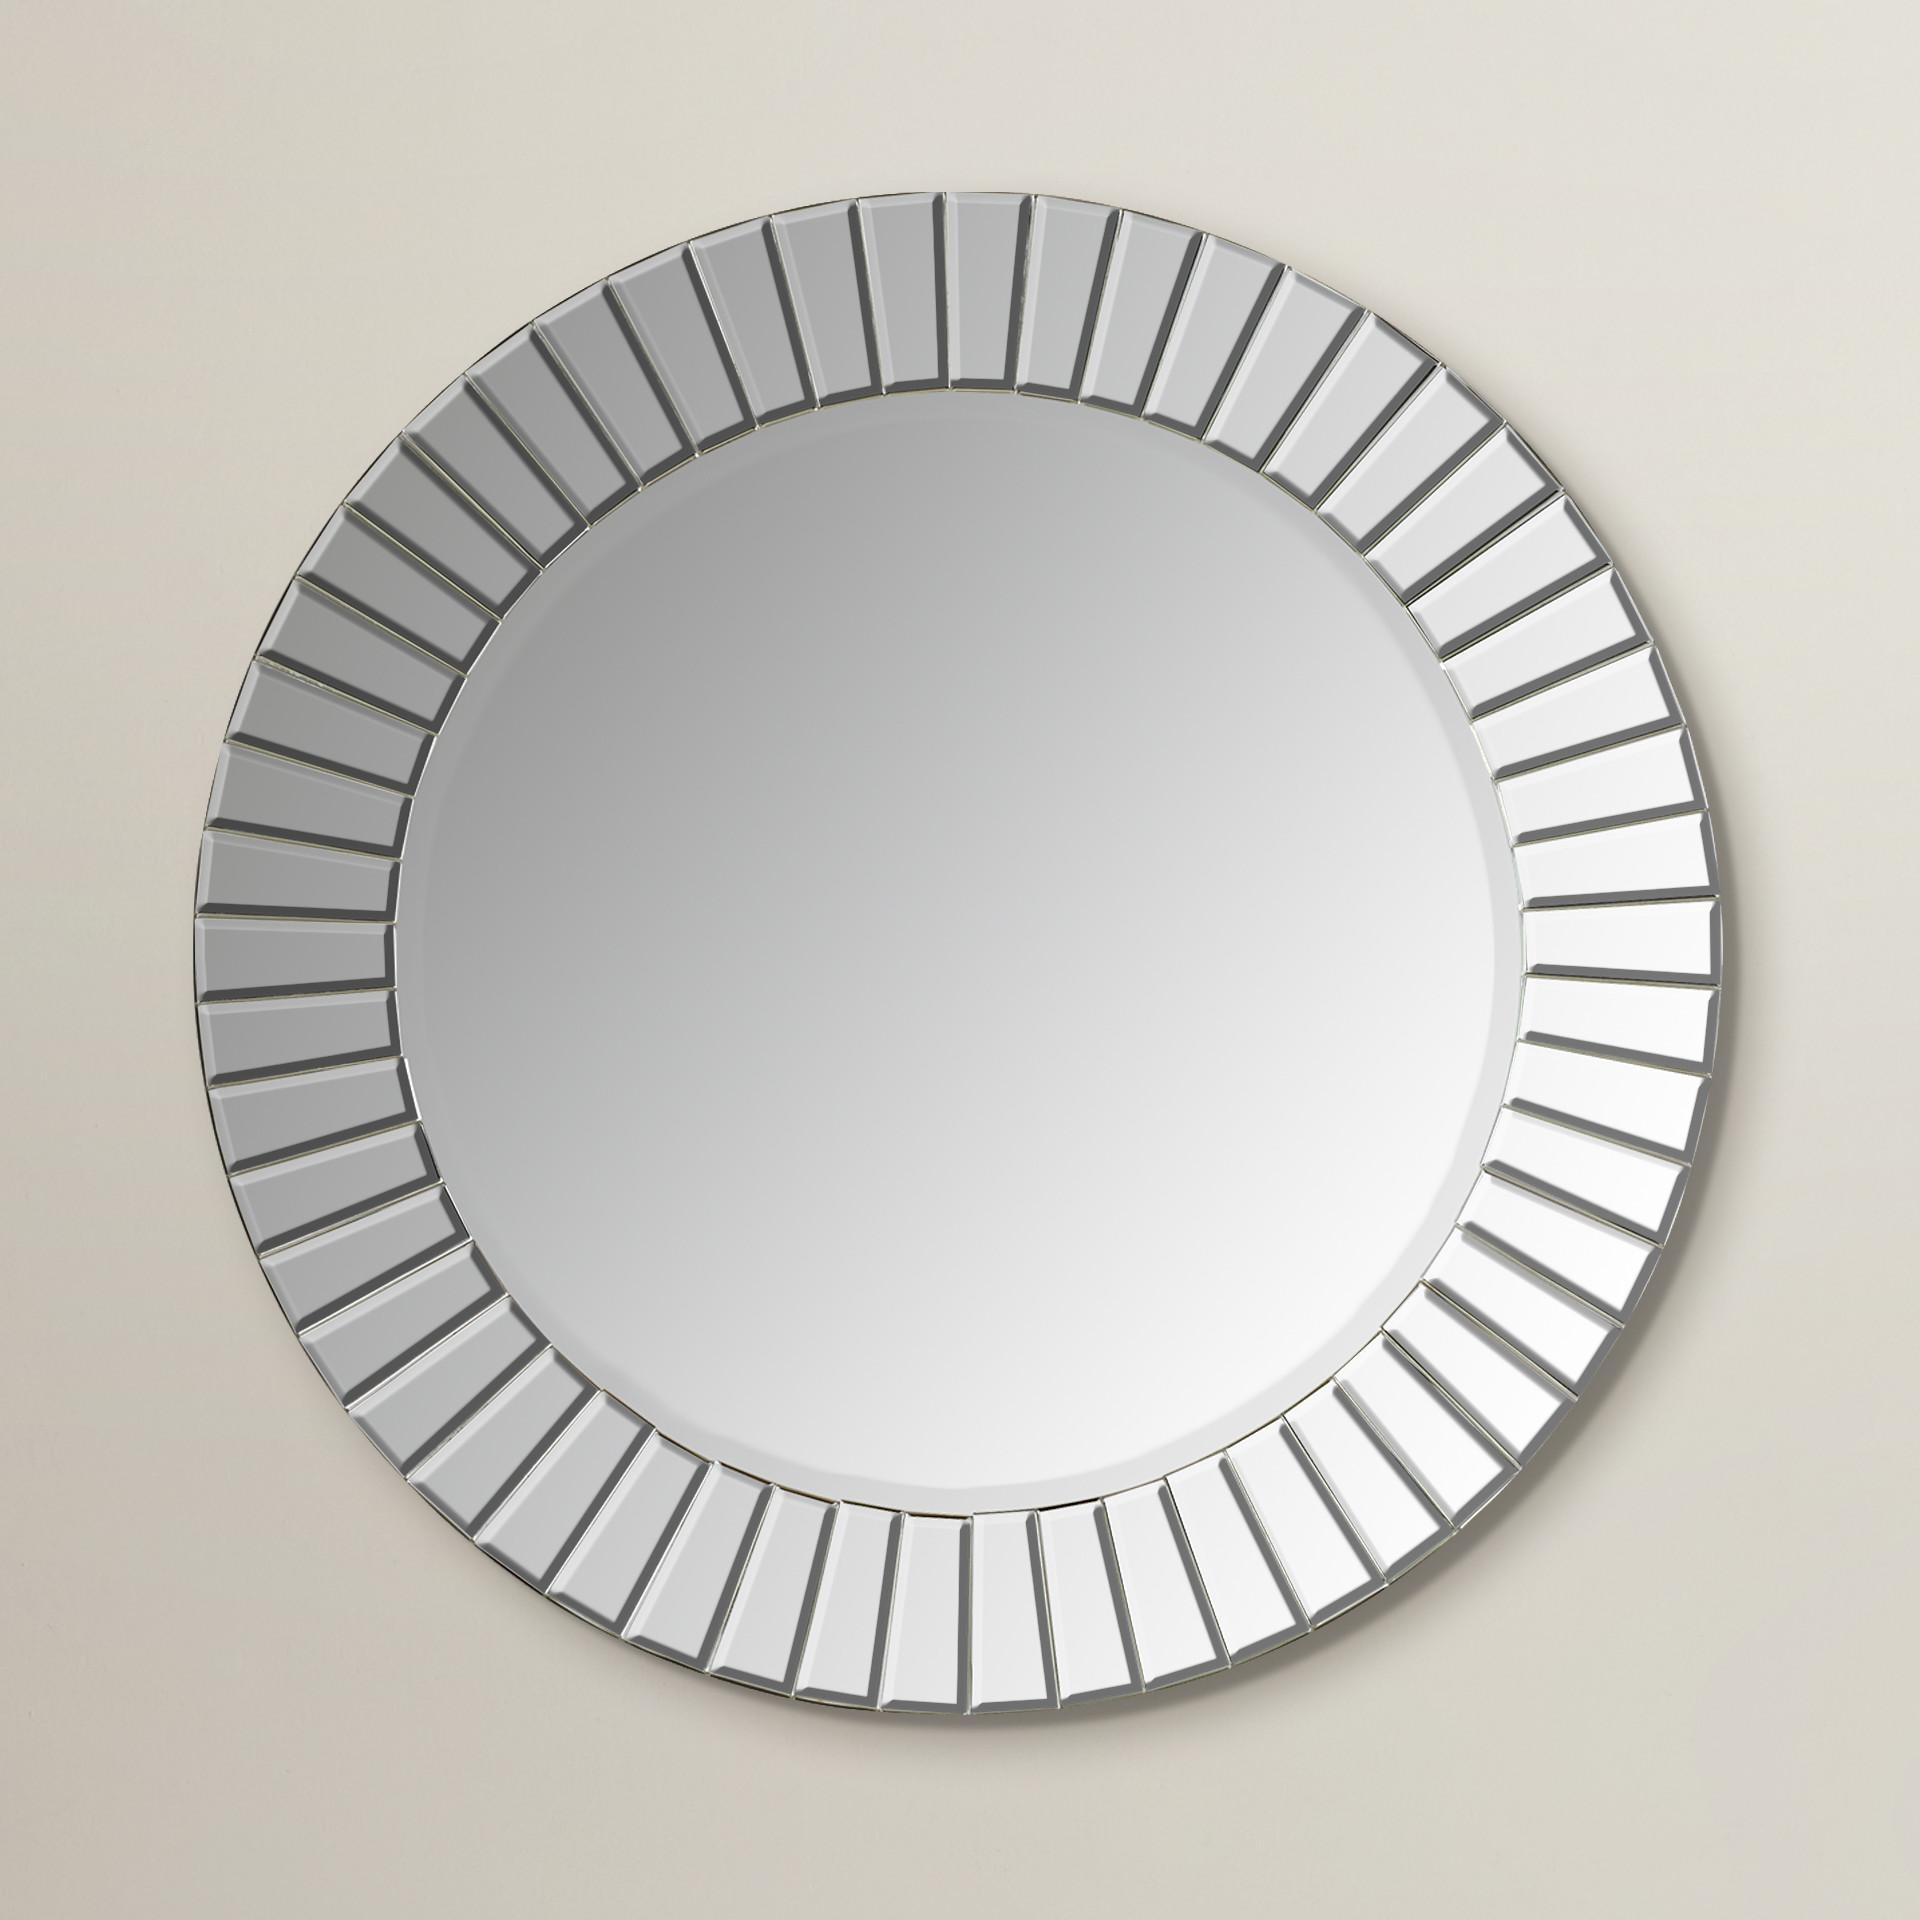 Bathroom: Light Up Your Home With Frameless Beveled Mirror With Frameless Wall Mirrors (Image 2 of 20)